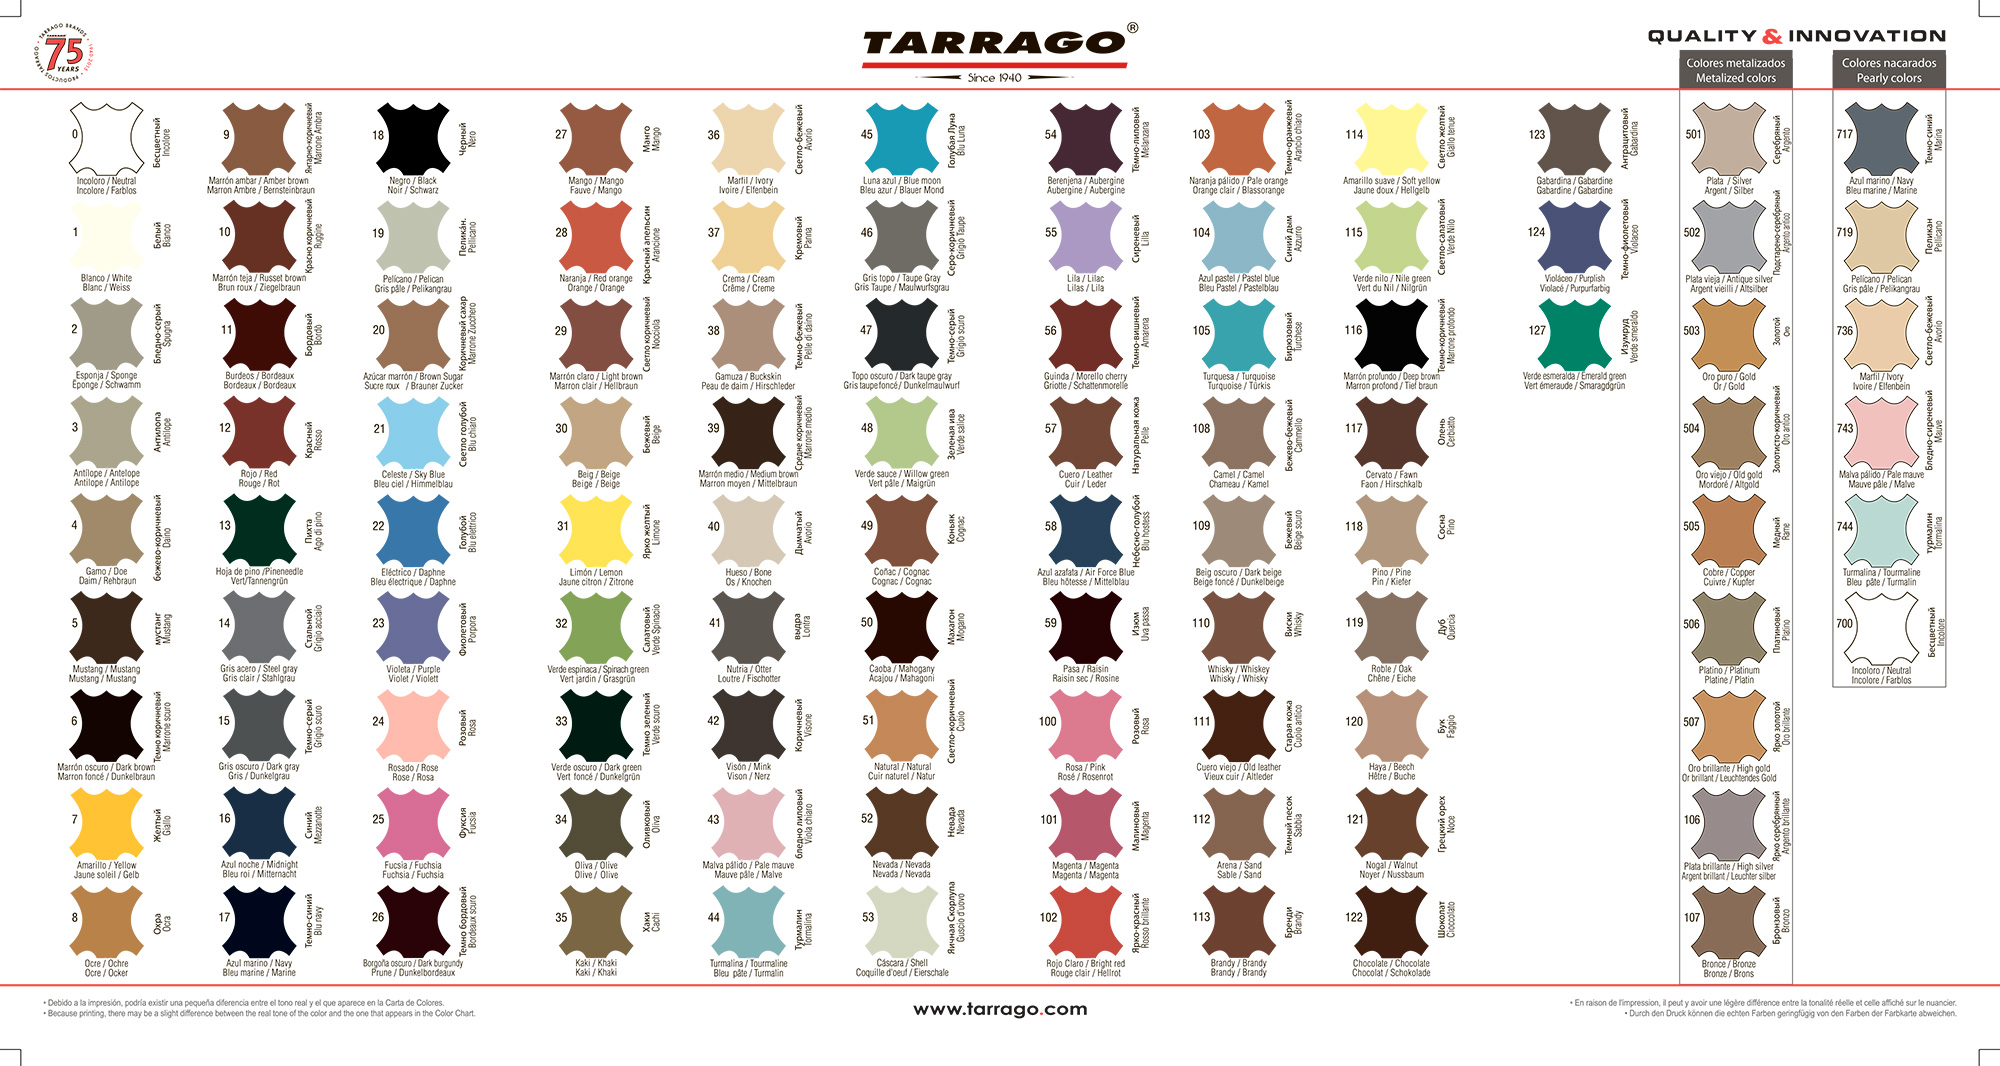 tarrago-colors